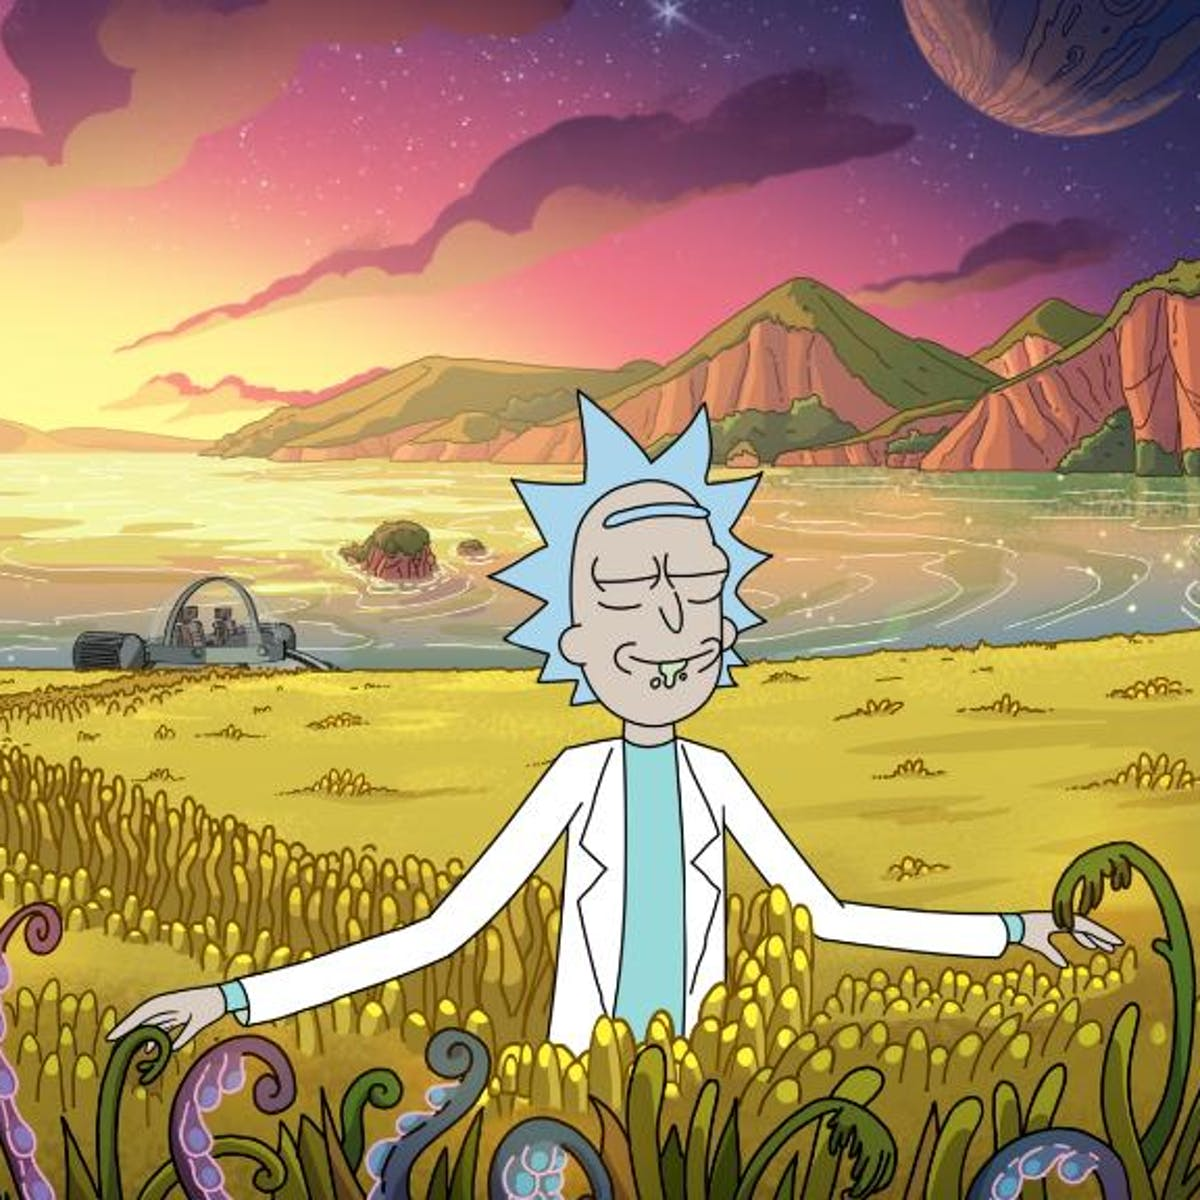 'Rick and Morty' Season 4 Guest Stars: 6 Theories on Who Each Could Play